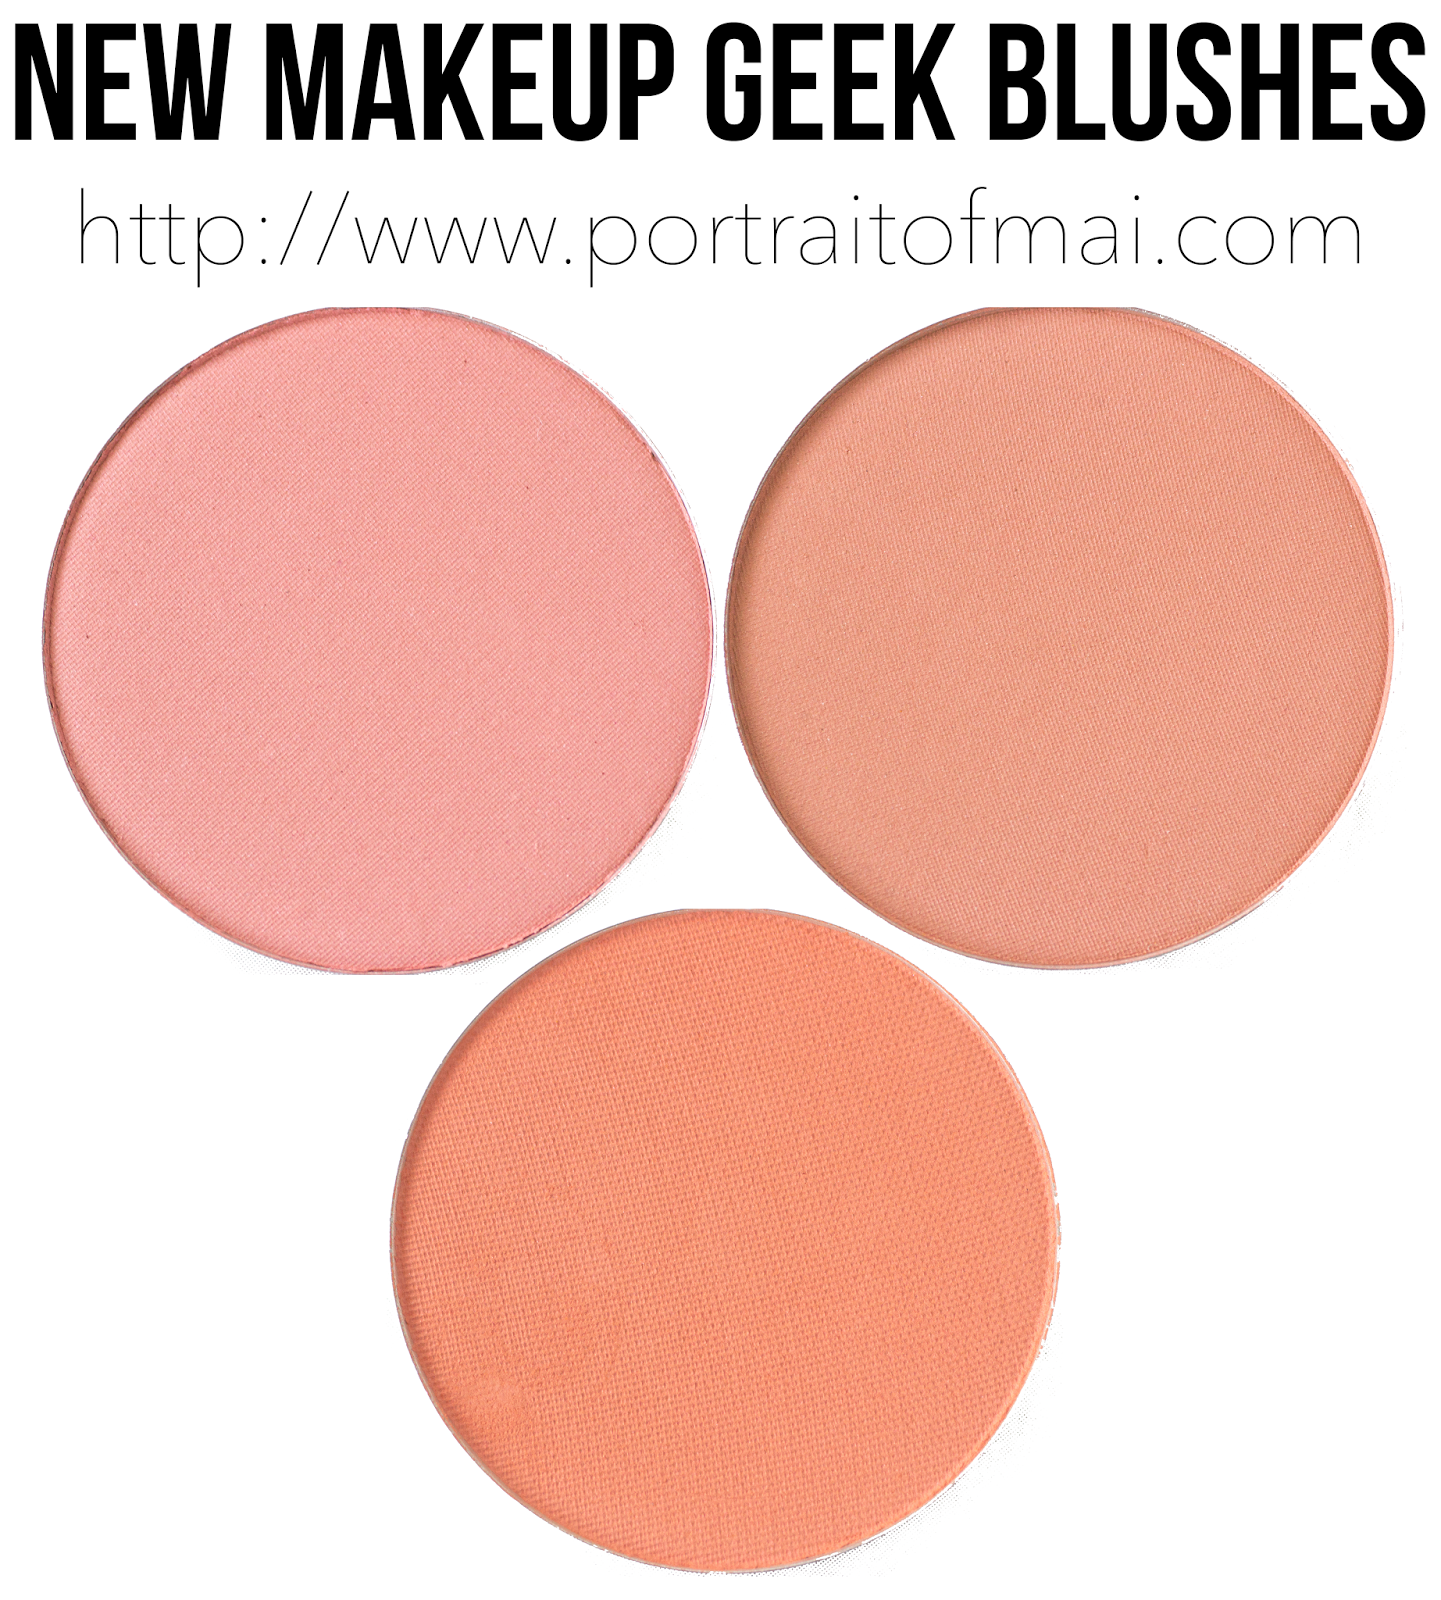 New Makeup Geek Blushes Swatches/Review and Formula